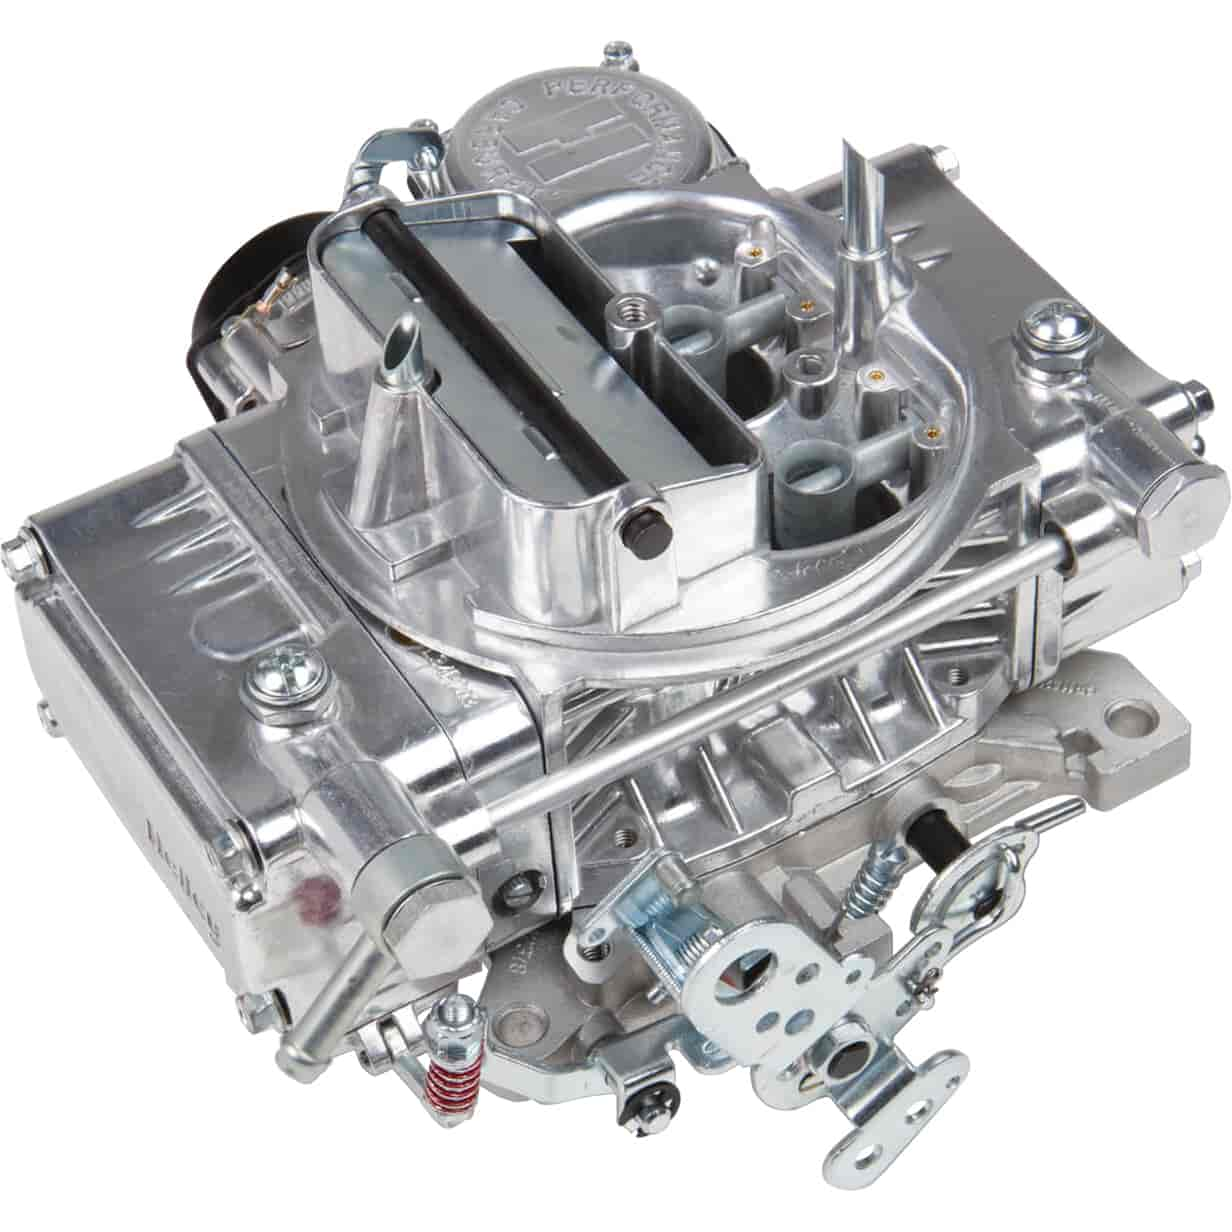 Holley 0-80457SA - Holley 600 cfm Aluminum Street Carburetors